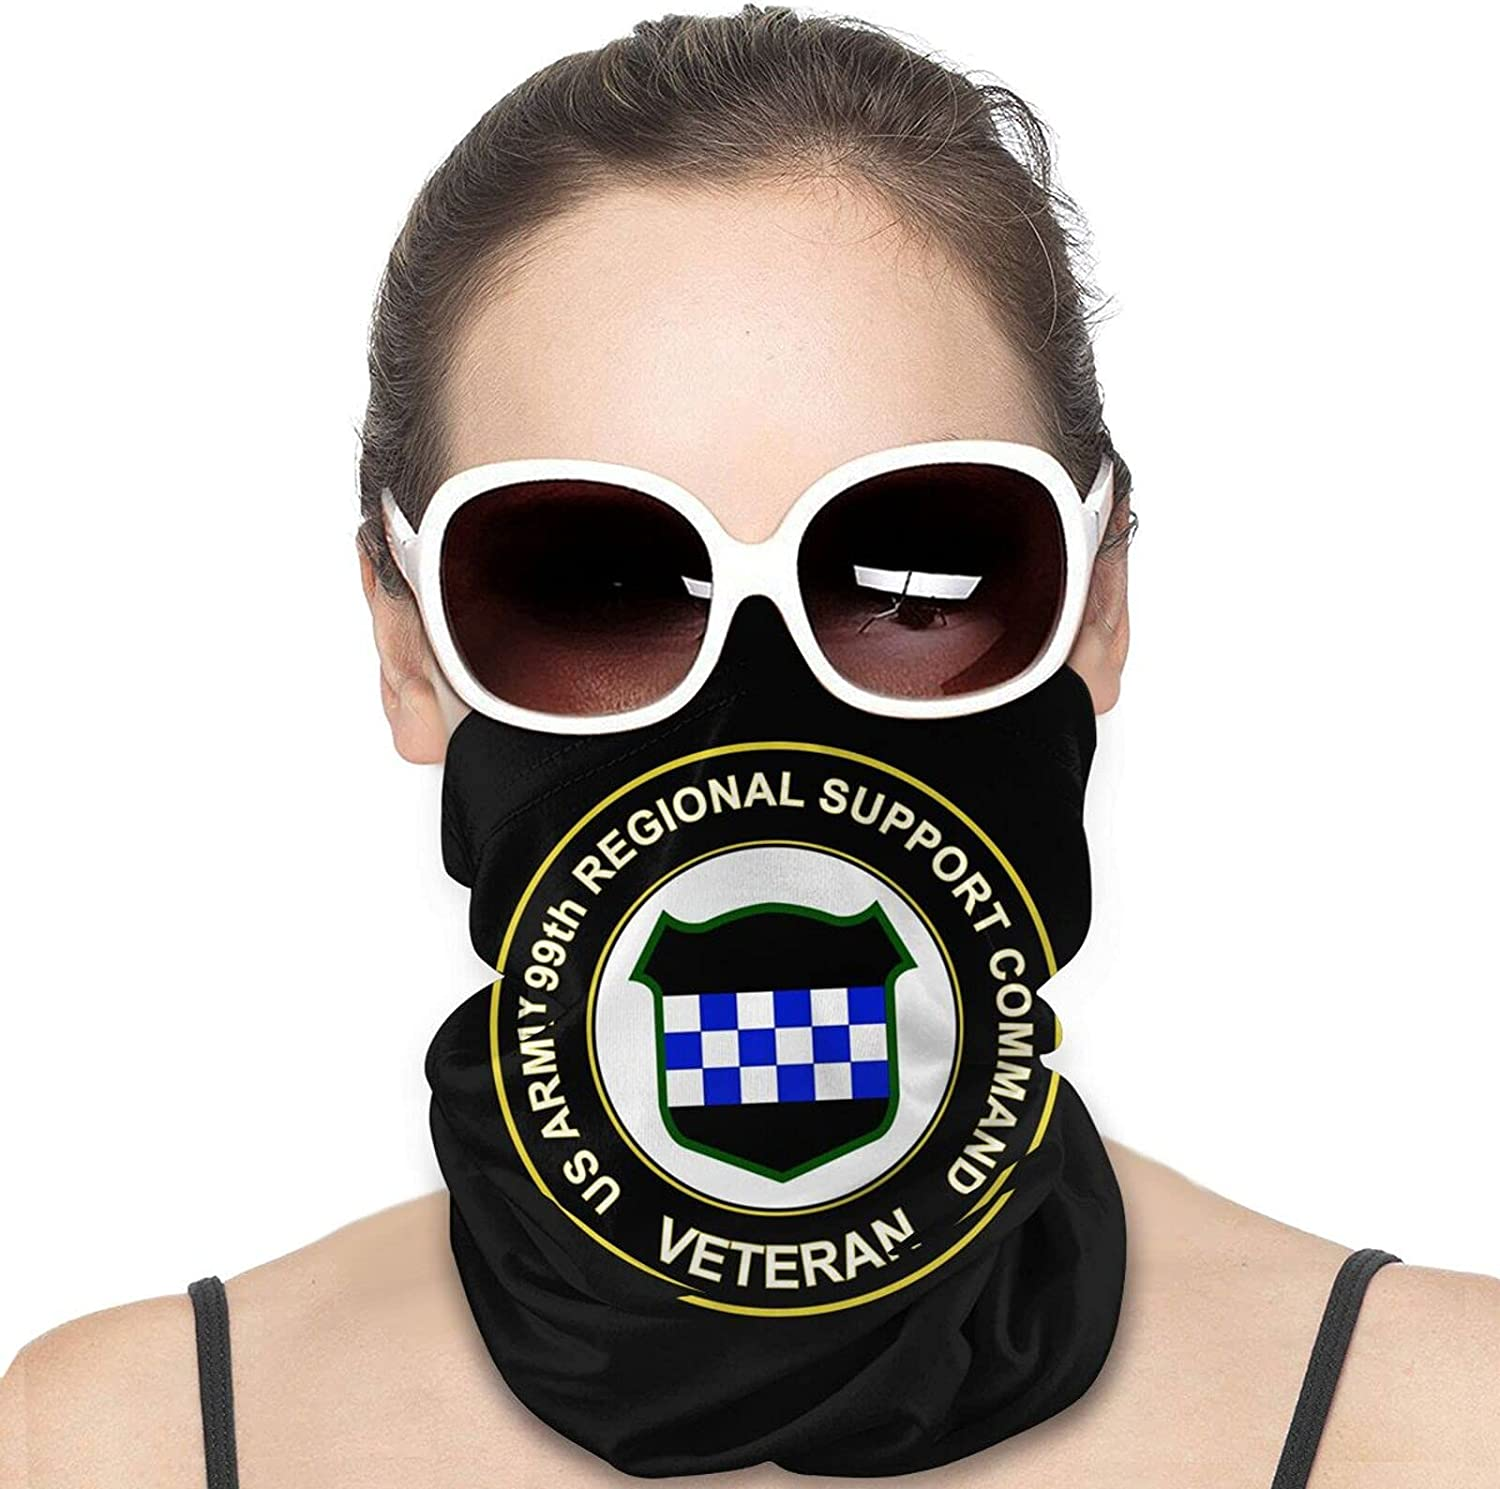 U.S. Army Veteran 99th Regional Support Command Round Neck Gaiter Bandnas Face Cover Uv Protection Prevent bask in Ice Scarf Headbands Perfect for Motorcycle Cycling Running Festival Raves Outdoors